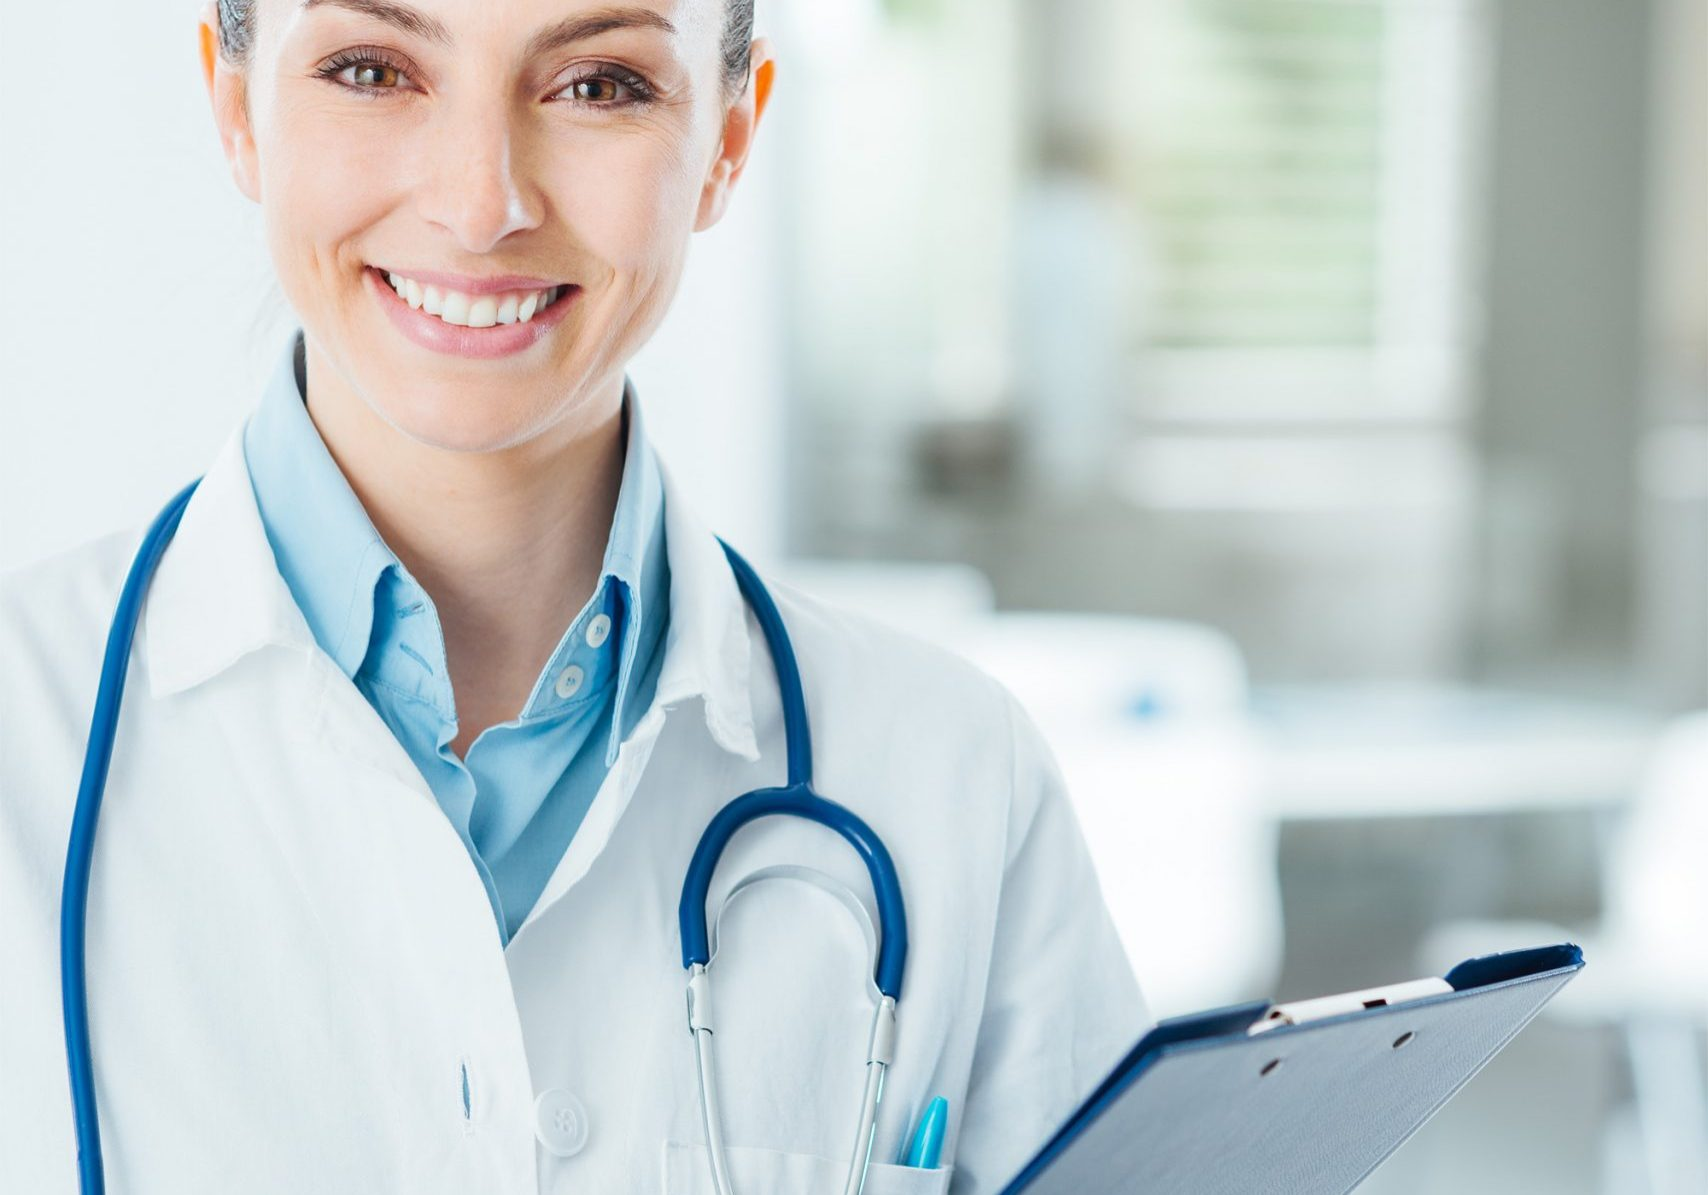 Smiling female doctor with lab coat in her office holding a clipboard with medical records, she is looking at camera